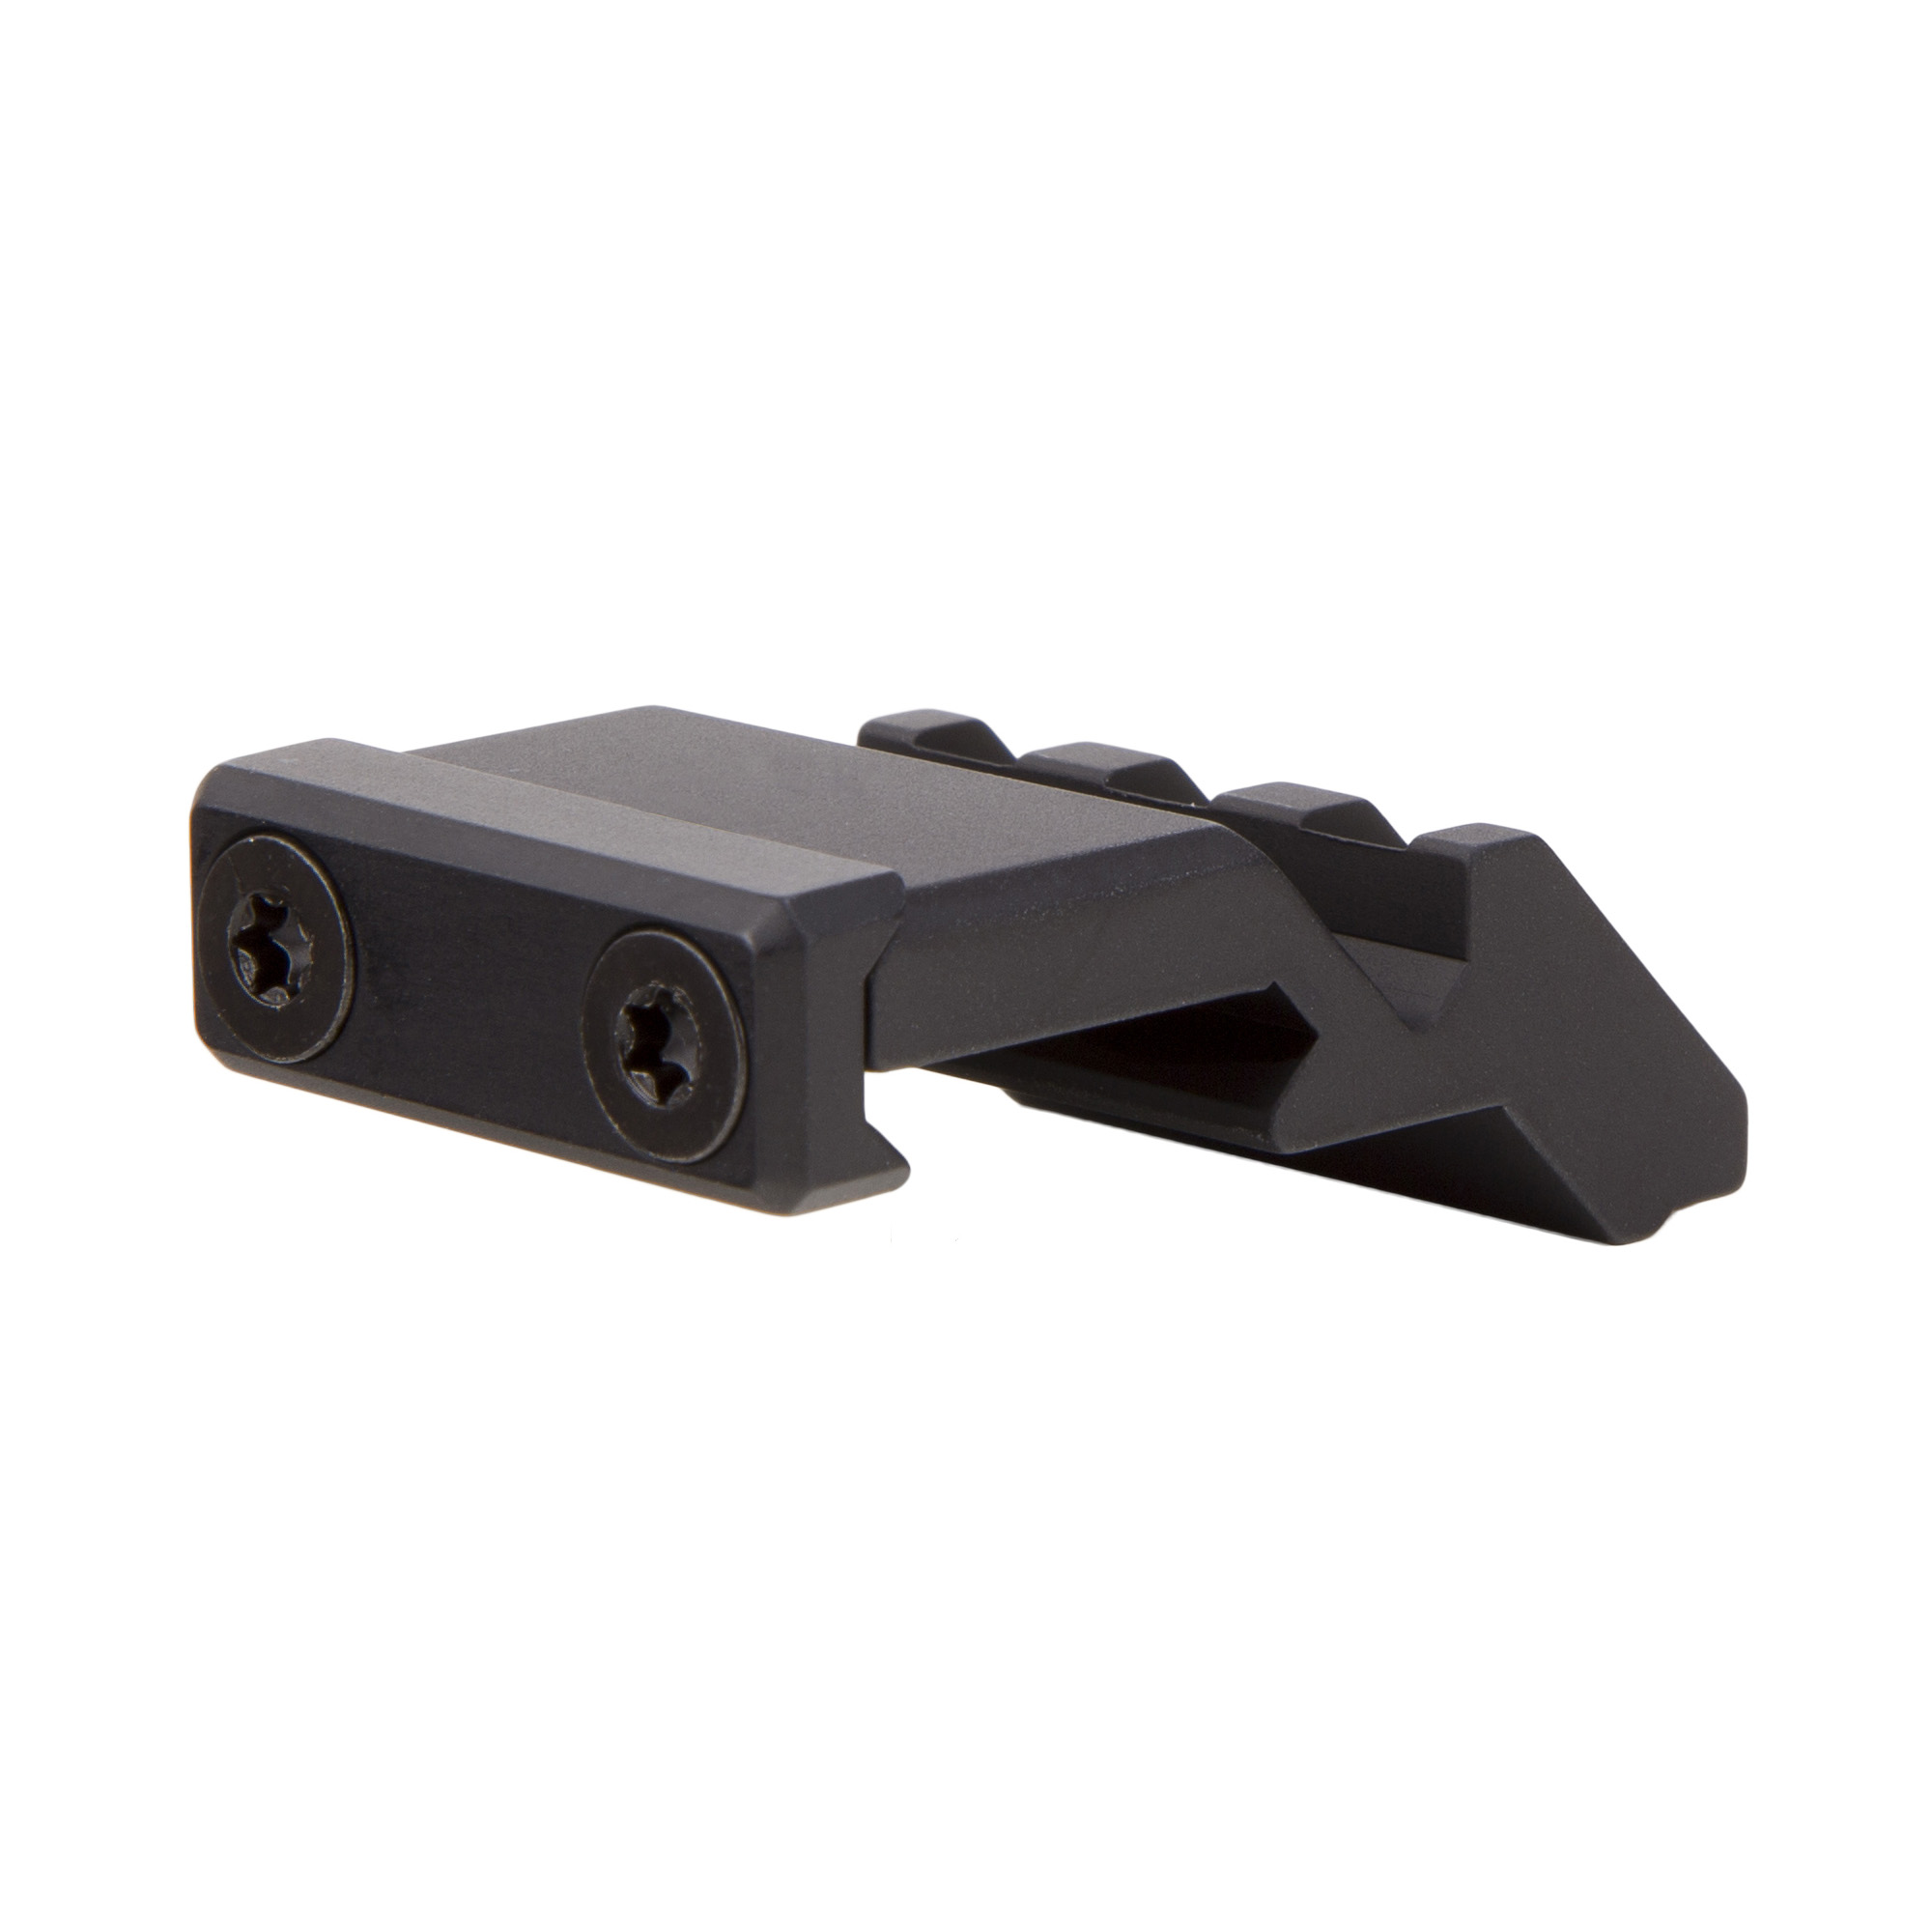 "Perfect for that situation where you need the versatility of a magnified optic paired with a Trijicon RMR(R) or SRO(TM) red dot sight in close quarters. This offset rail adapter attaches to the firearm's picatinny rail and provides a short picatinny rail at a 45 degree offset to mount a red dot sight. By mounting a red dot at a 45 degree offset"" it allows for an easy transition from the magnified optic by simply rotating the firearm. The low profile of this mount allows you to mount underneath almost any riflescope (such as the Trijicon AccuPoint(R)) without removing the scope or rings"" or in front/behind the optic (such as the Trijicon ACOG(R) or VCOG(R)). Please note that this is just the rail adapter. In order to mount the Trijicon RMR(R) or SRO(TM)"" you will also need the RM33 Low Mount."